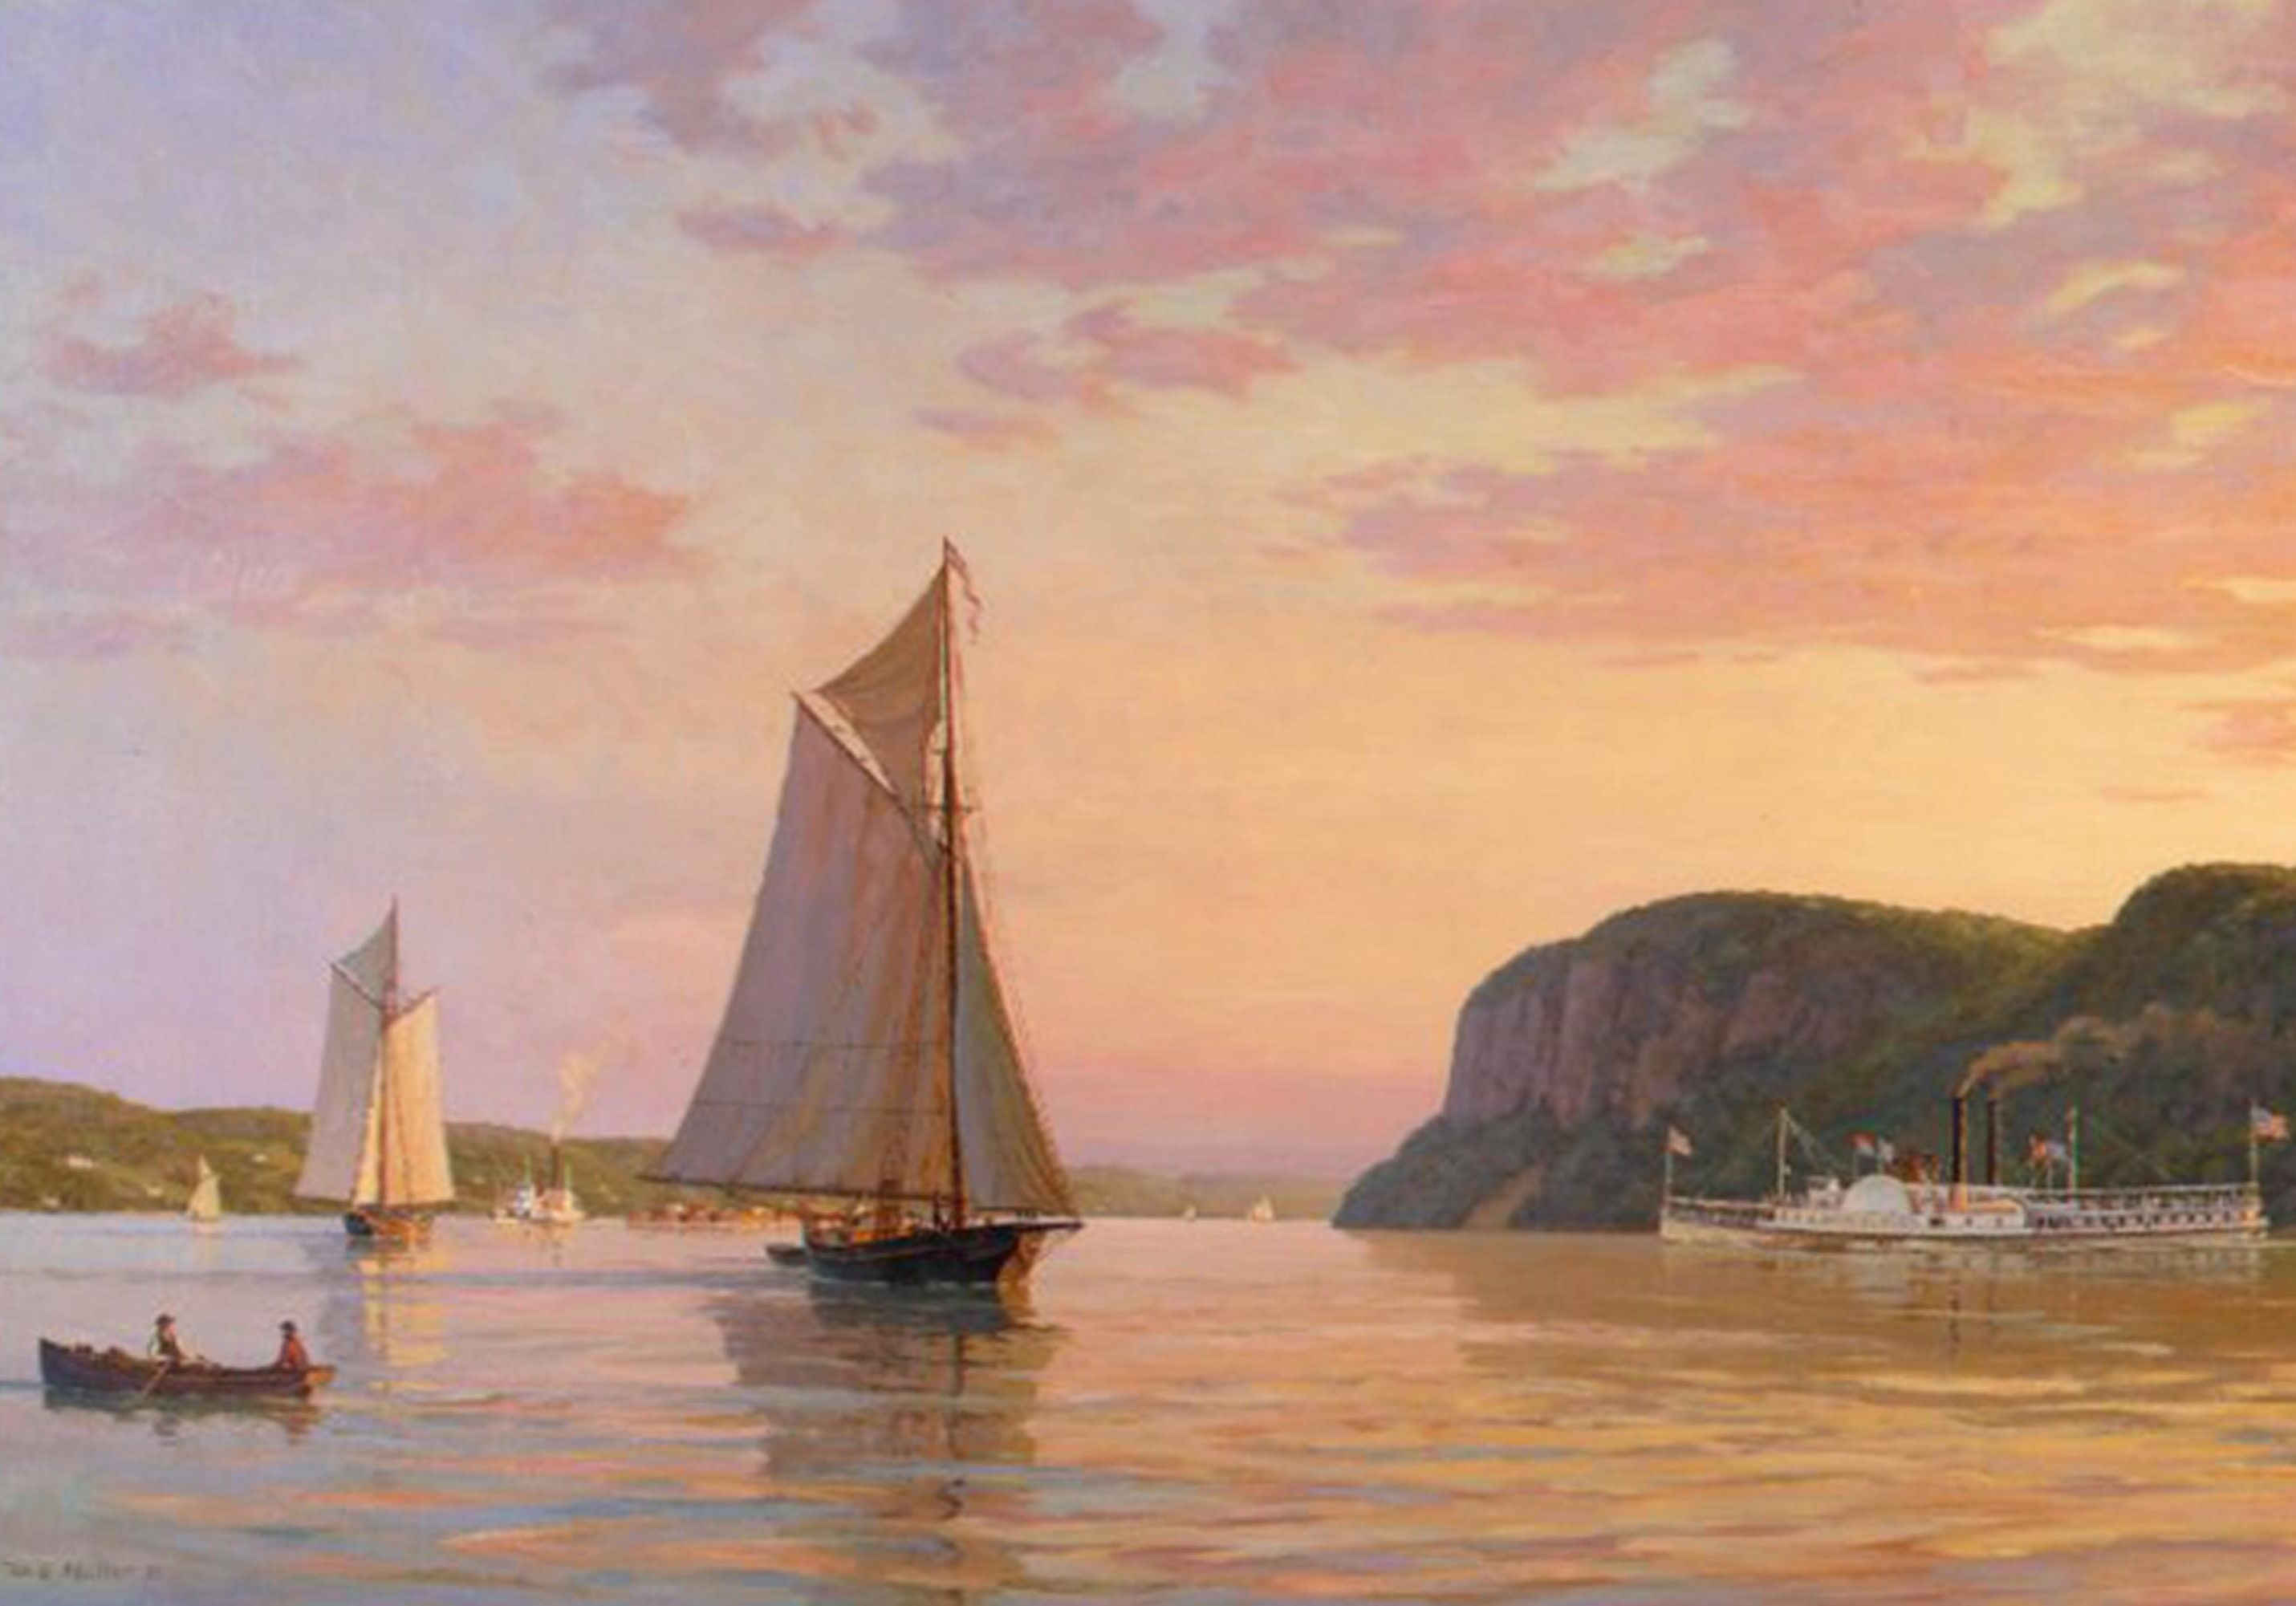 Evening On The Hudson,1862 By William G. Muller Post